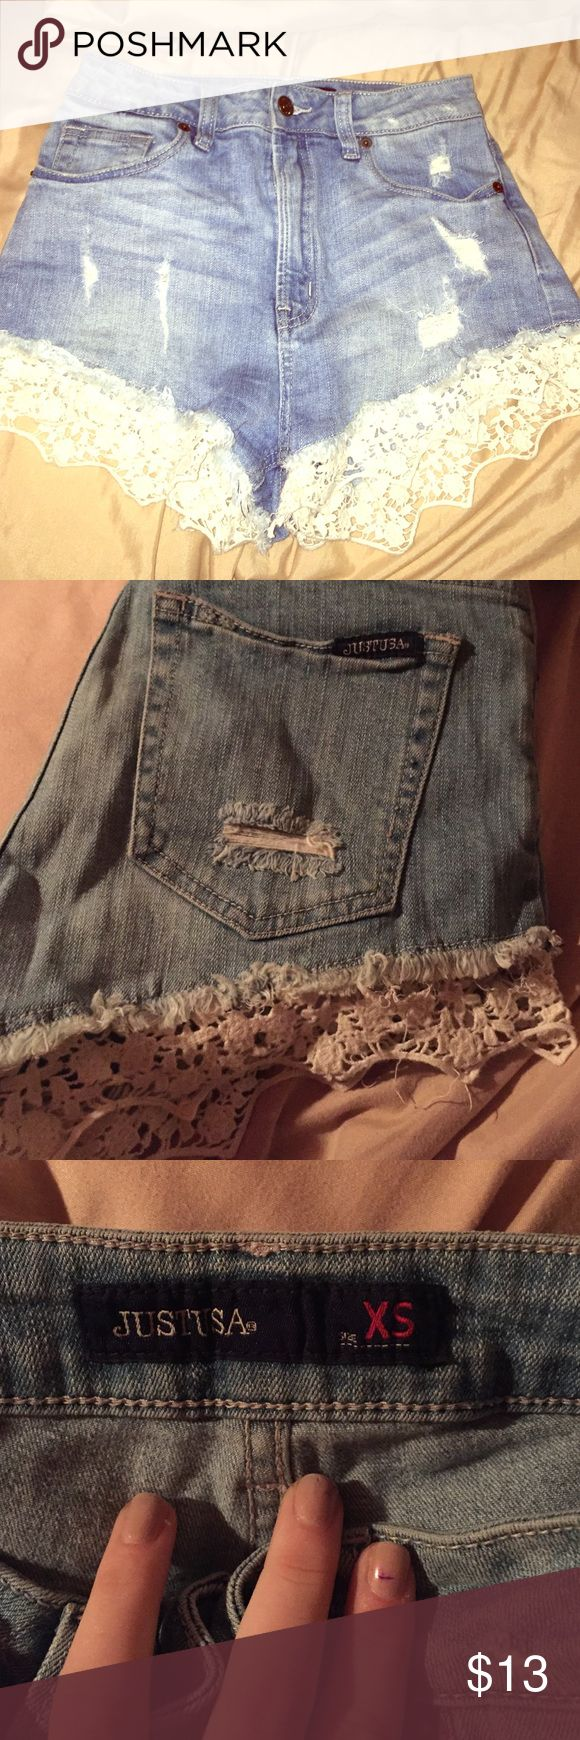 Distressed lace denim short Adorable high waisted, distressed style light wash denim shorts with lace trim at the bottoms! gently worn, size extra small, brand is Just USA and was purchased at a boutique on LI JUST USA Shorts Jean Shorts